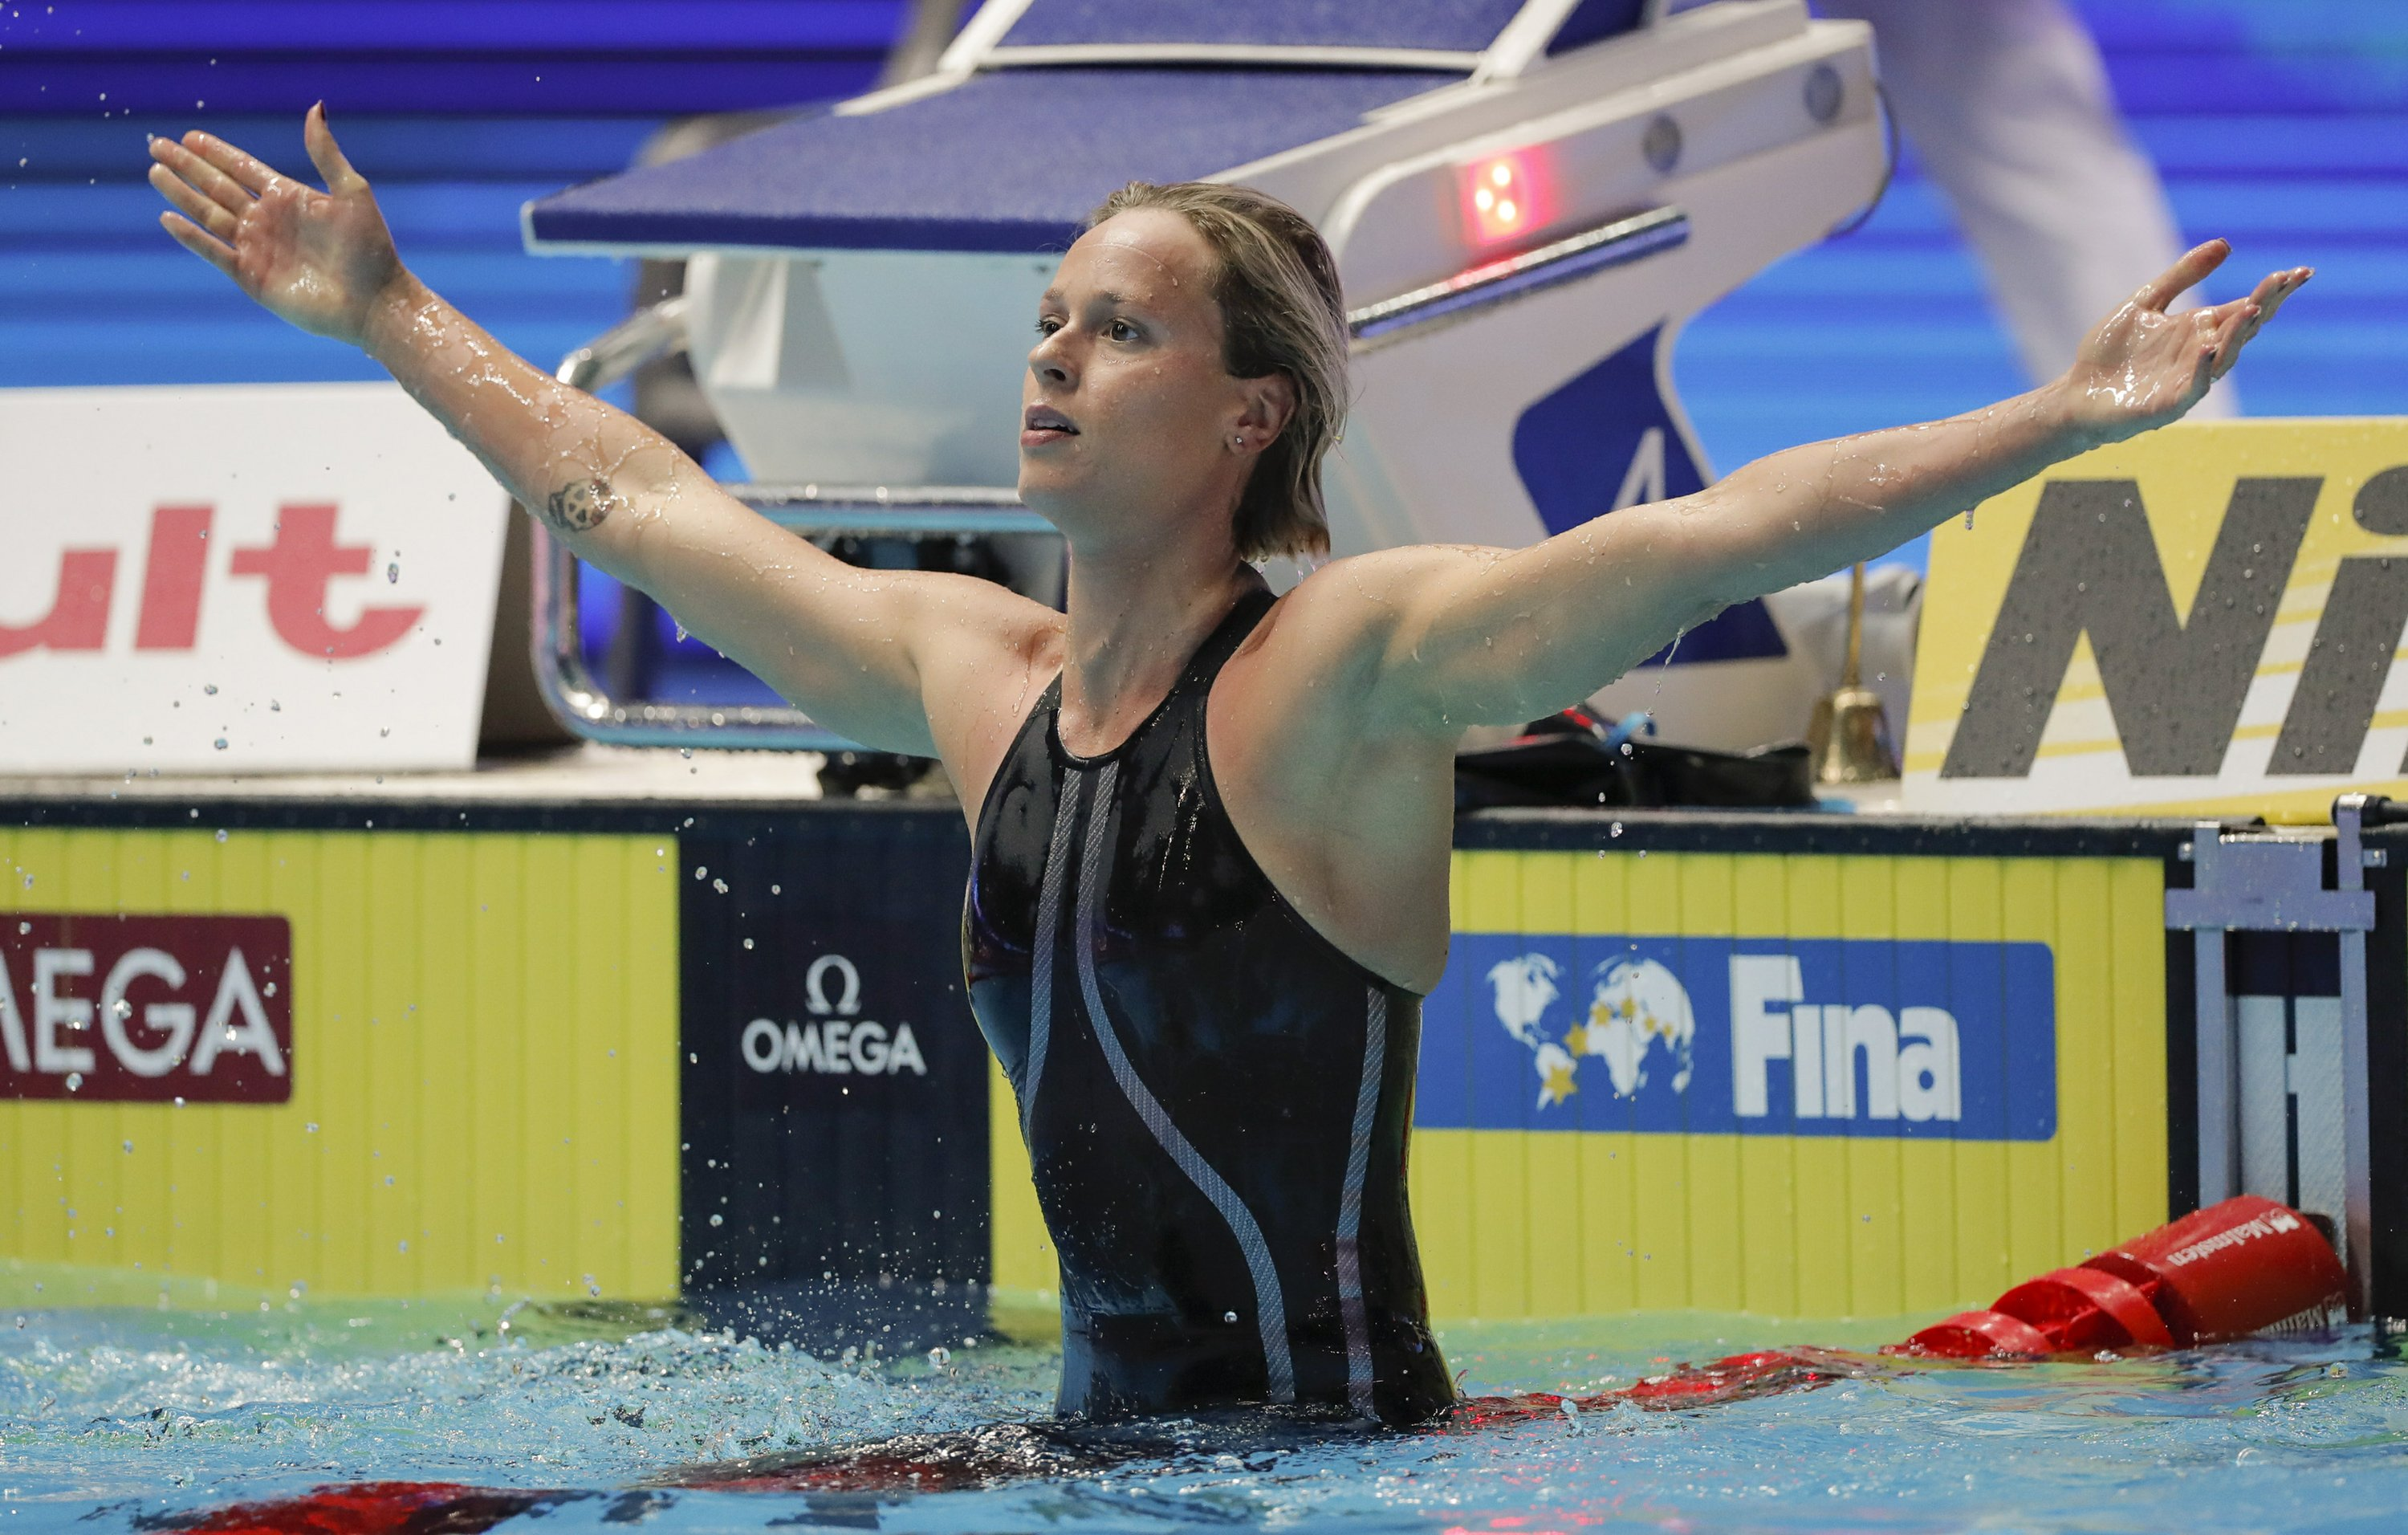 Pellegrini wins 8th world medal in 200 free